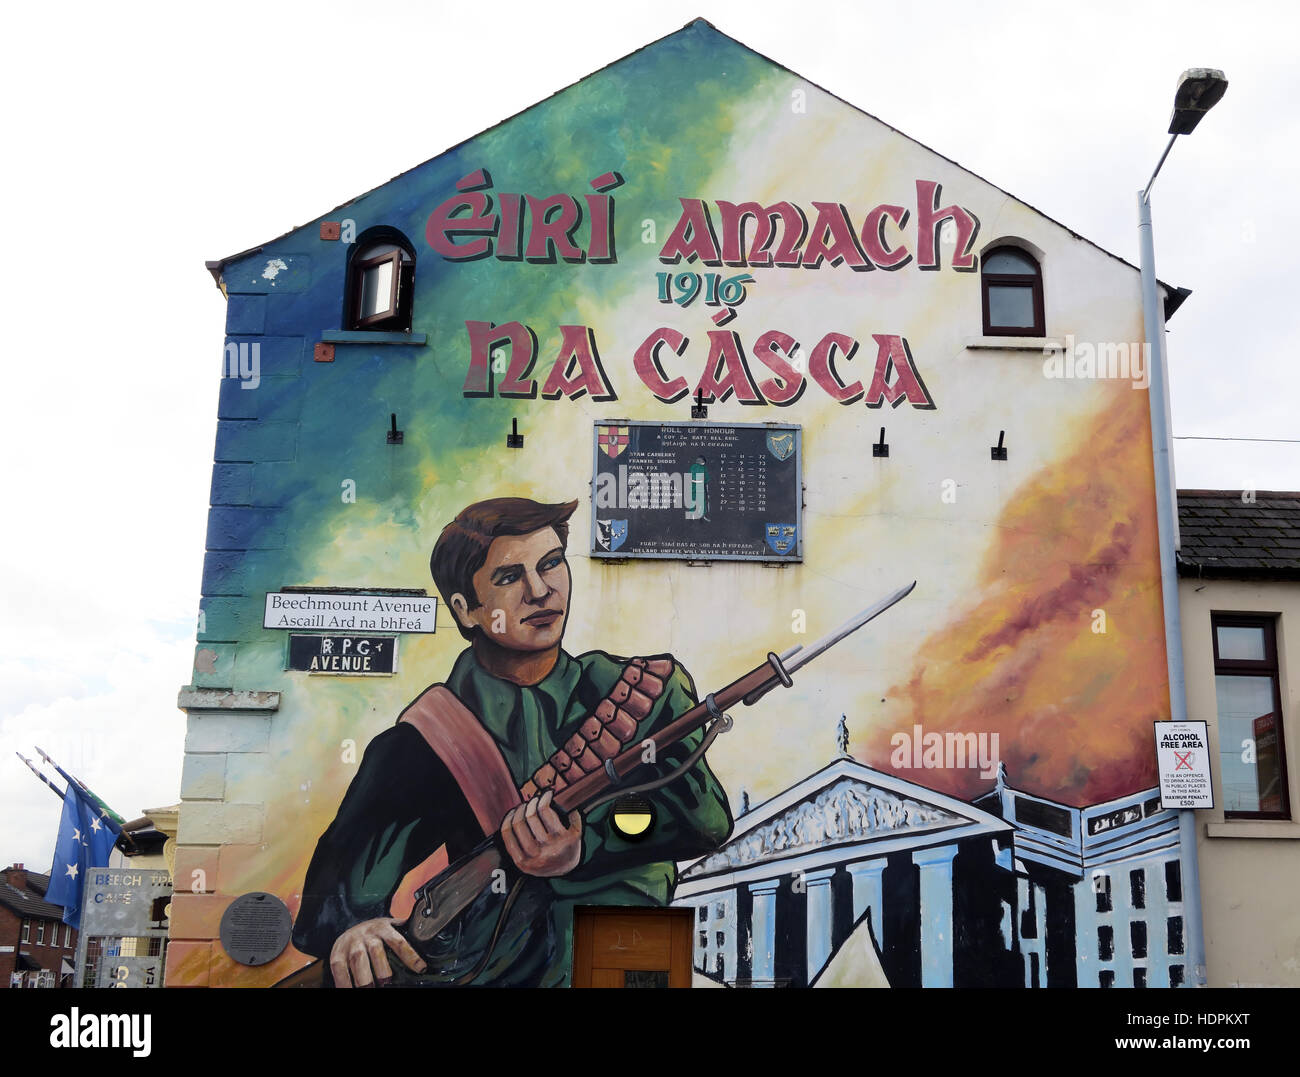 Belfast Falls Rd Republican Mural- RPG Ave, Beechmount Avenue,1916 Easter Rising - Stock Image